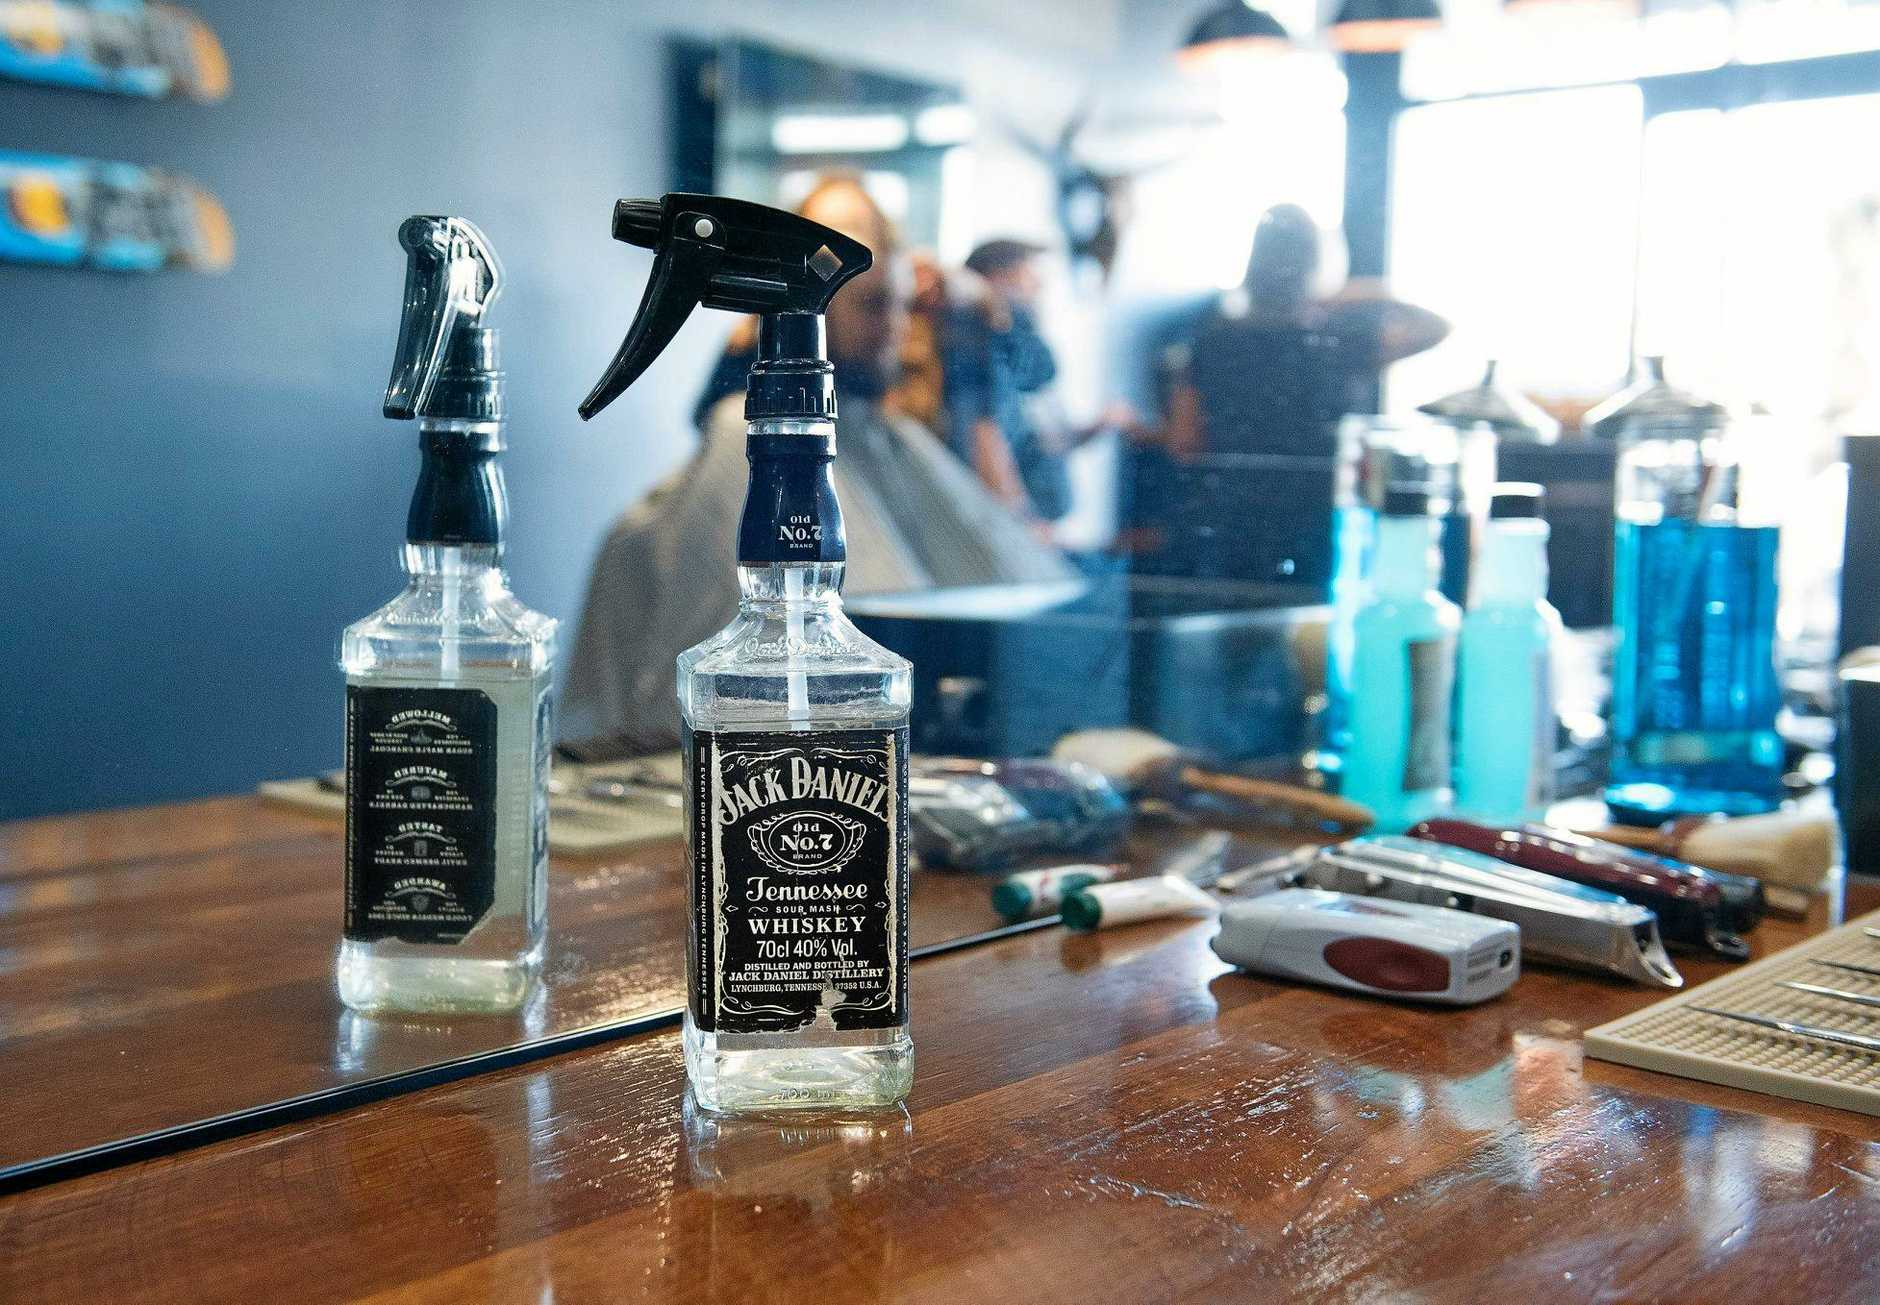 Houston and Co Barber Shop opened at the Karalee Shopping Village on September 14.